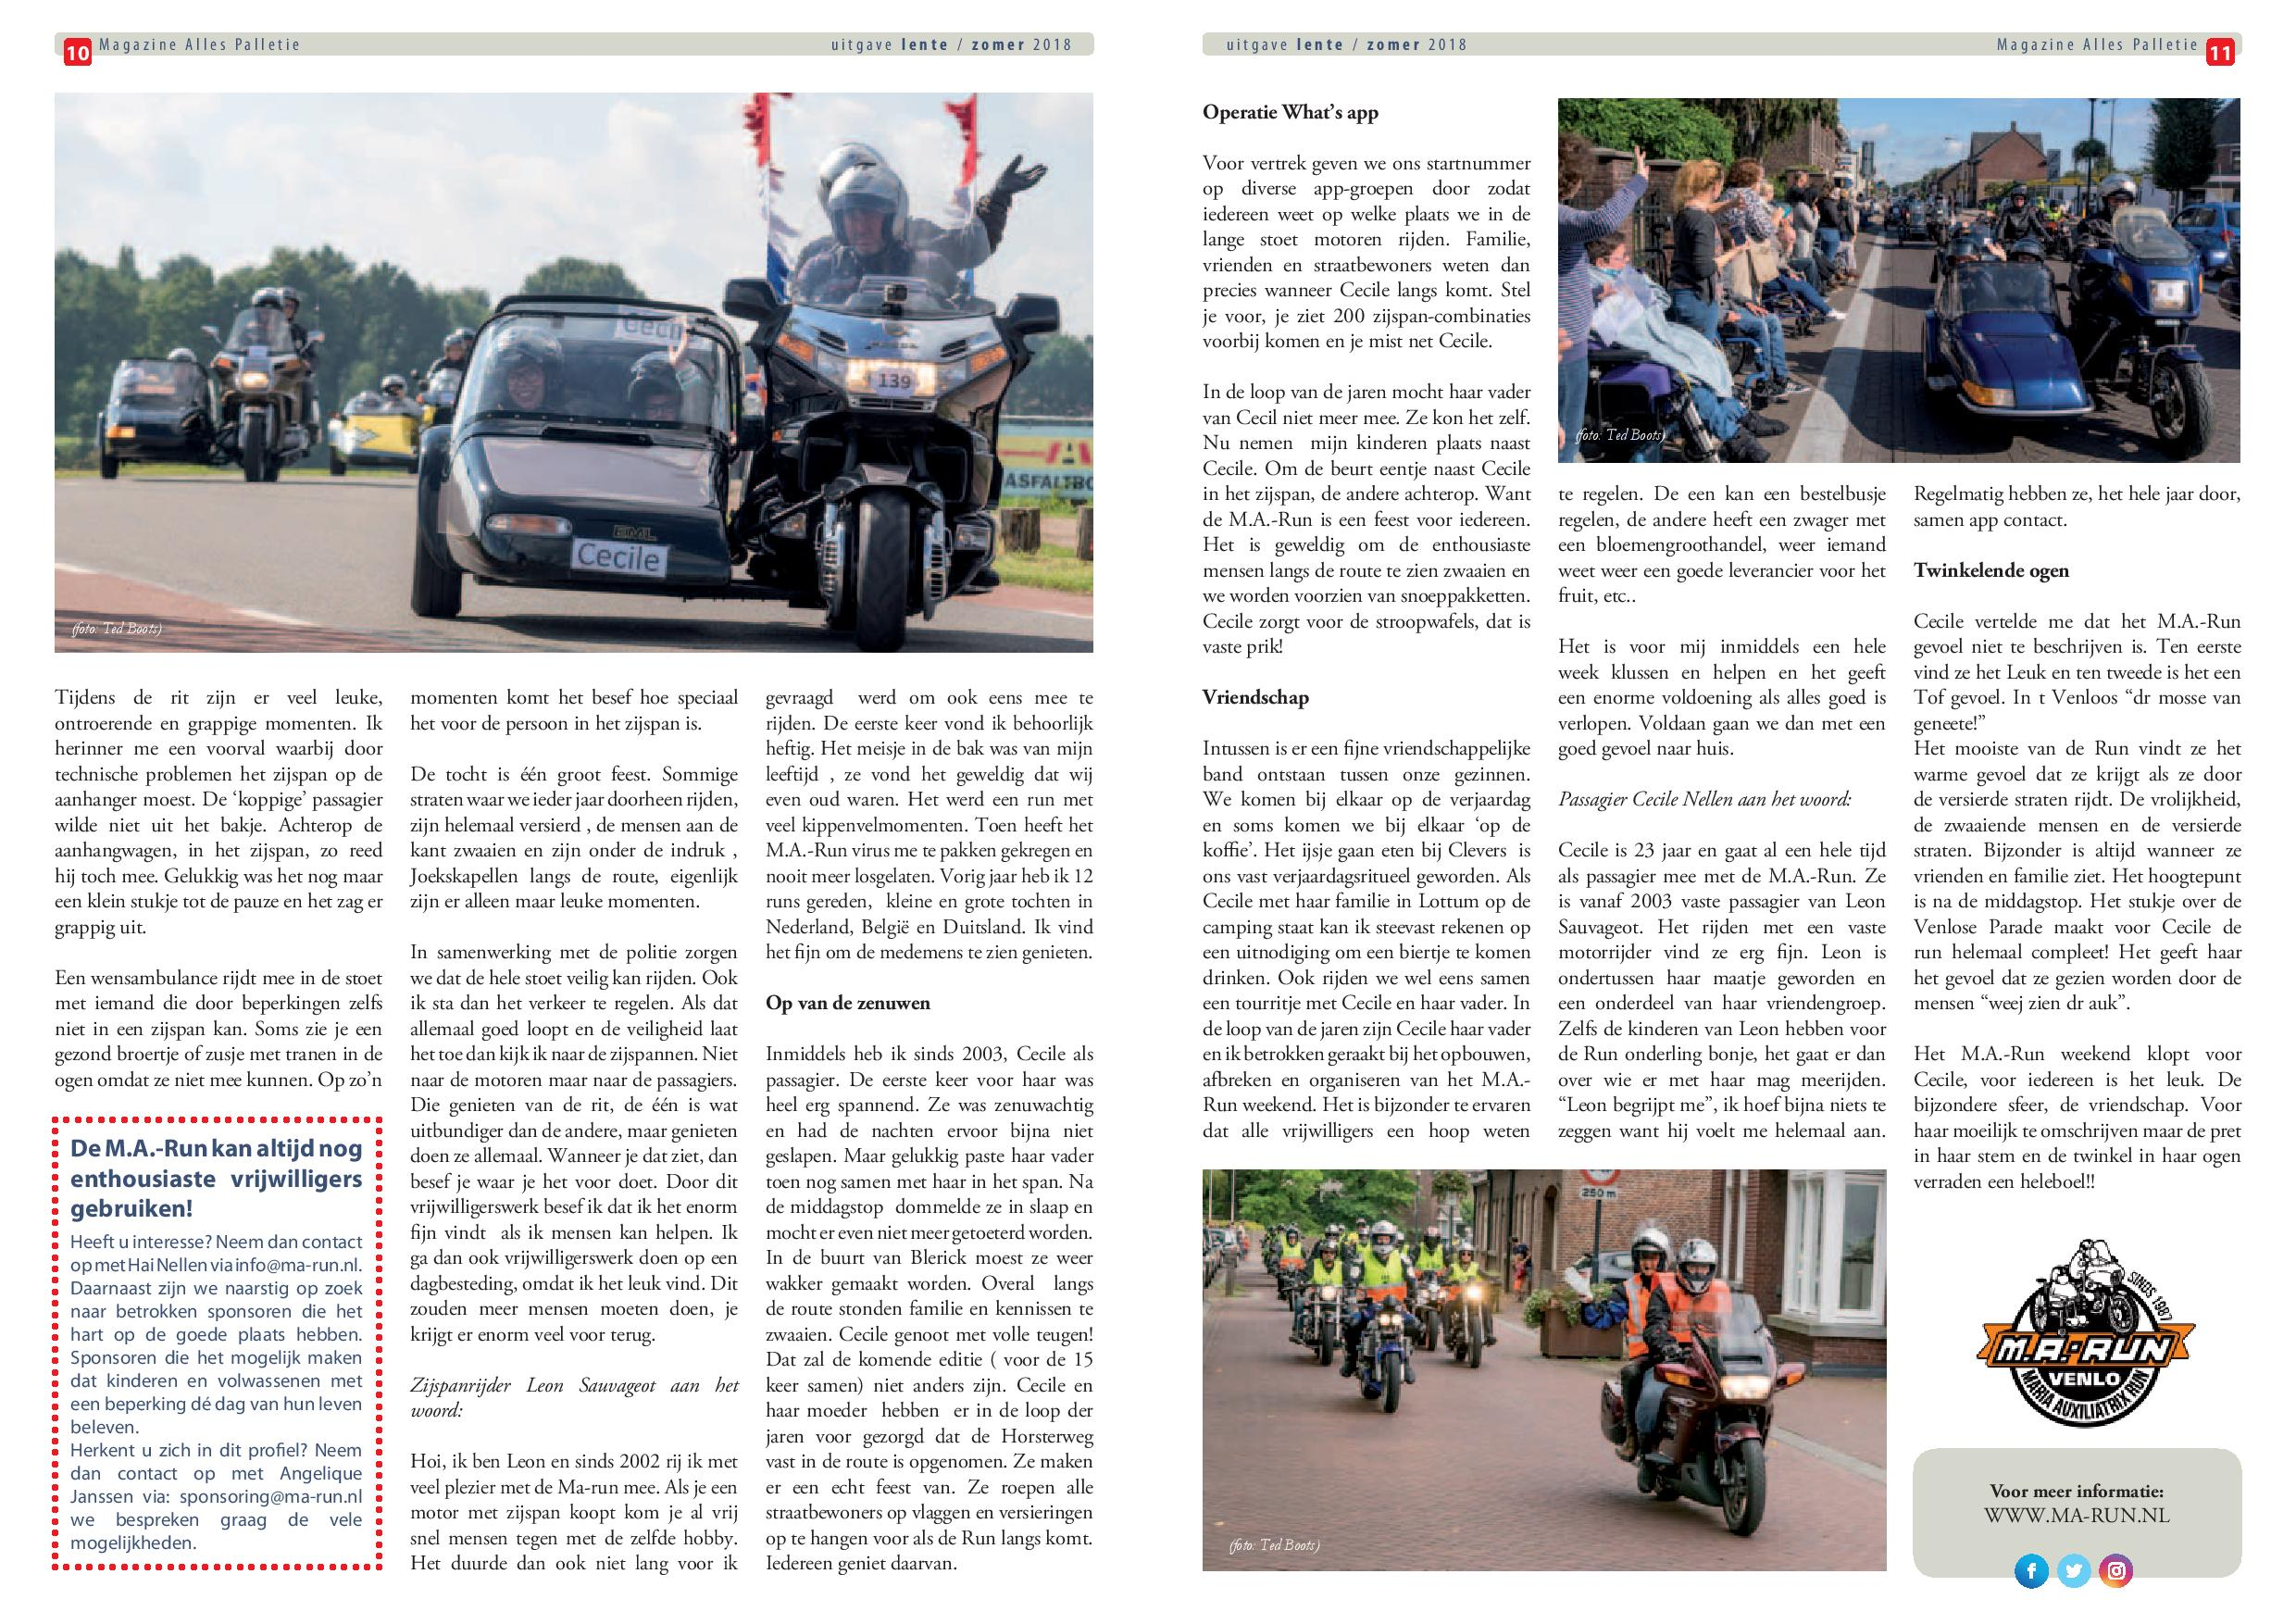 Magazine Alles Palletie uitgave lente zomer 2018 page 006